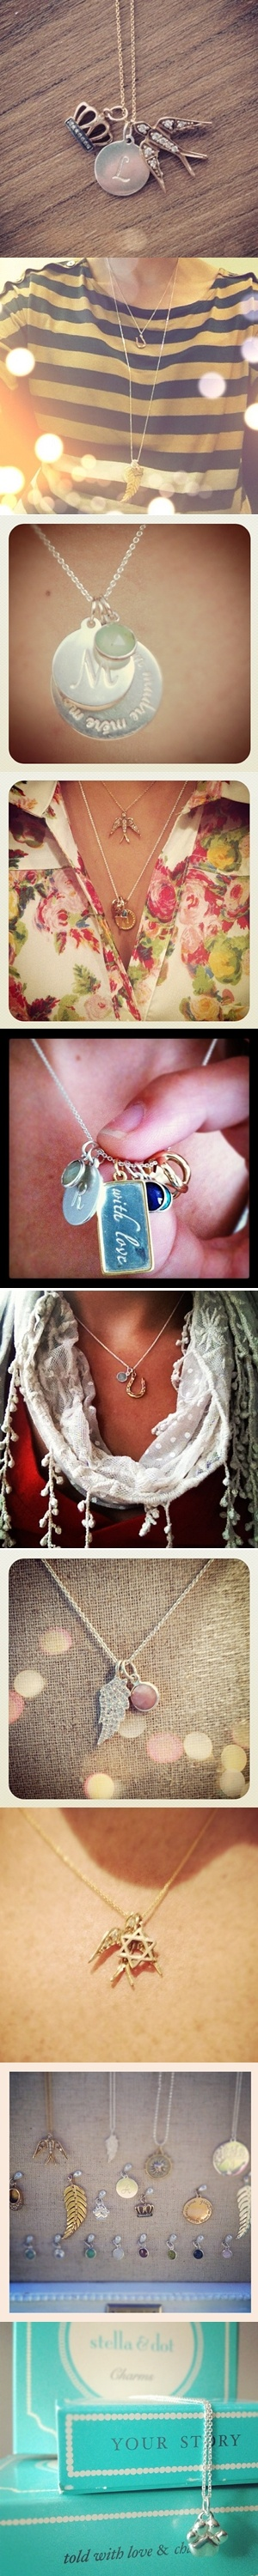 Gift idea: Personalized charm necklaces from Stella & Dot.